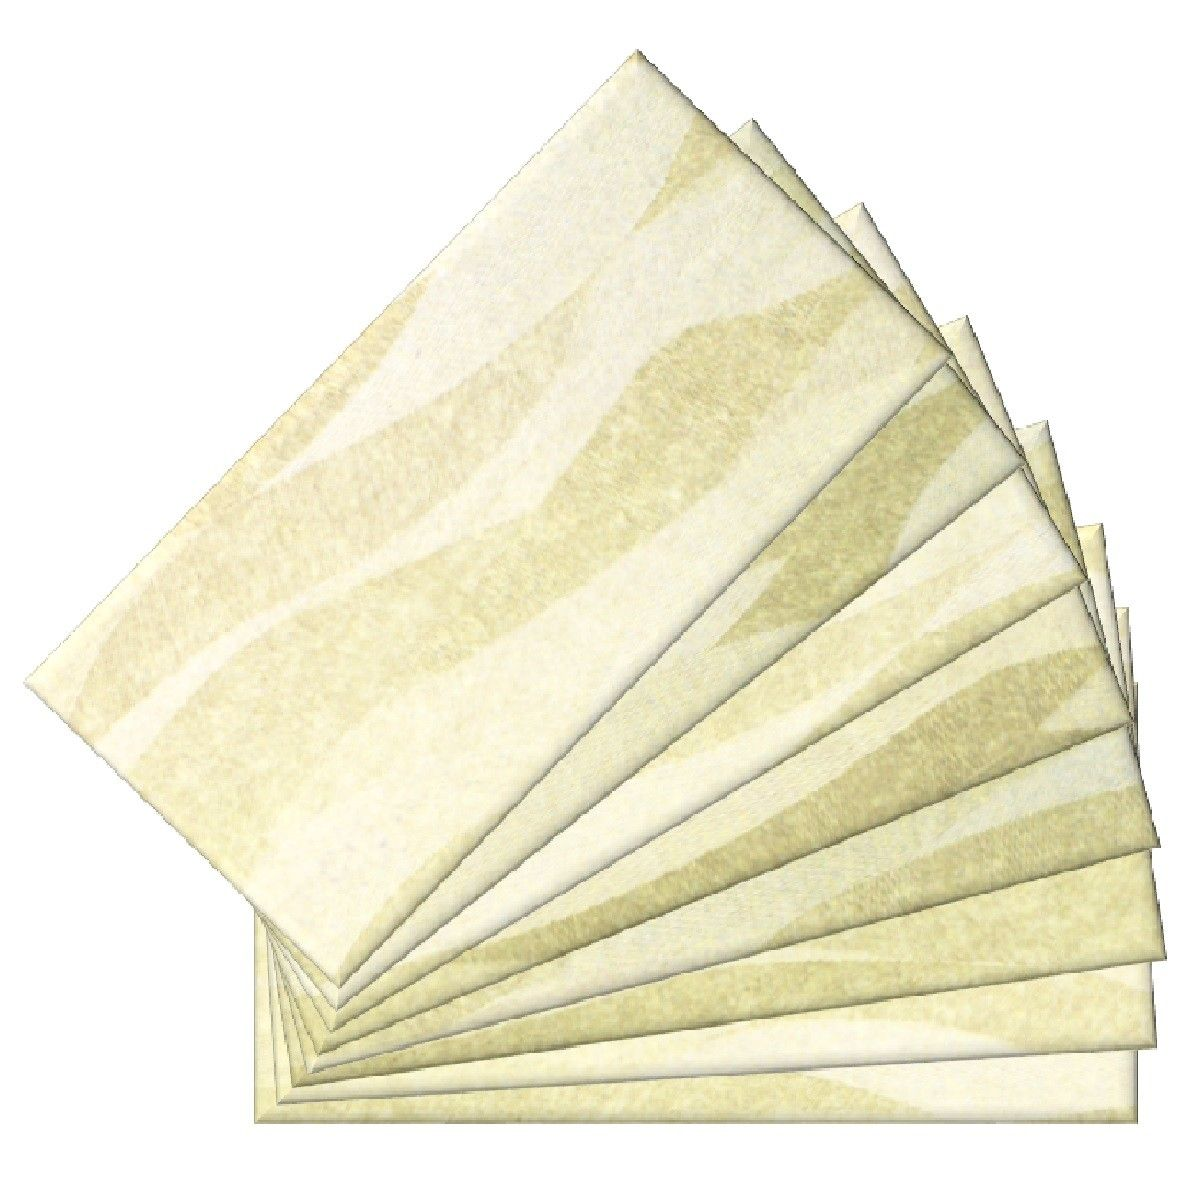 Skinny Glass Wall Tiles 04411 6in.x3in.(48Pack) Tile